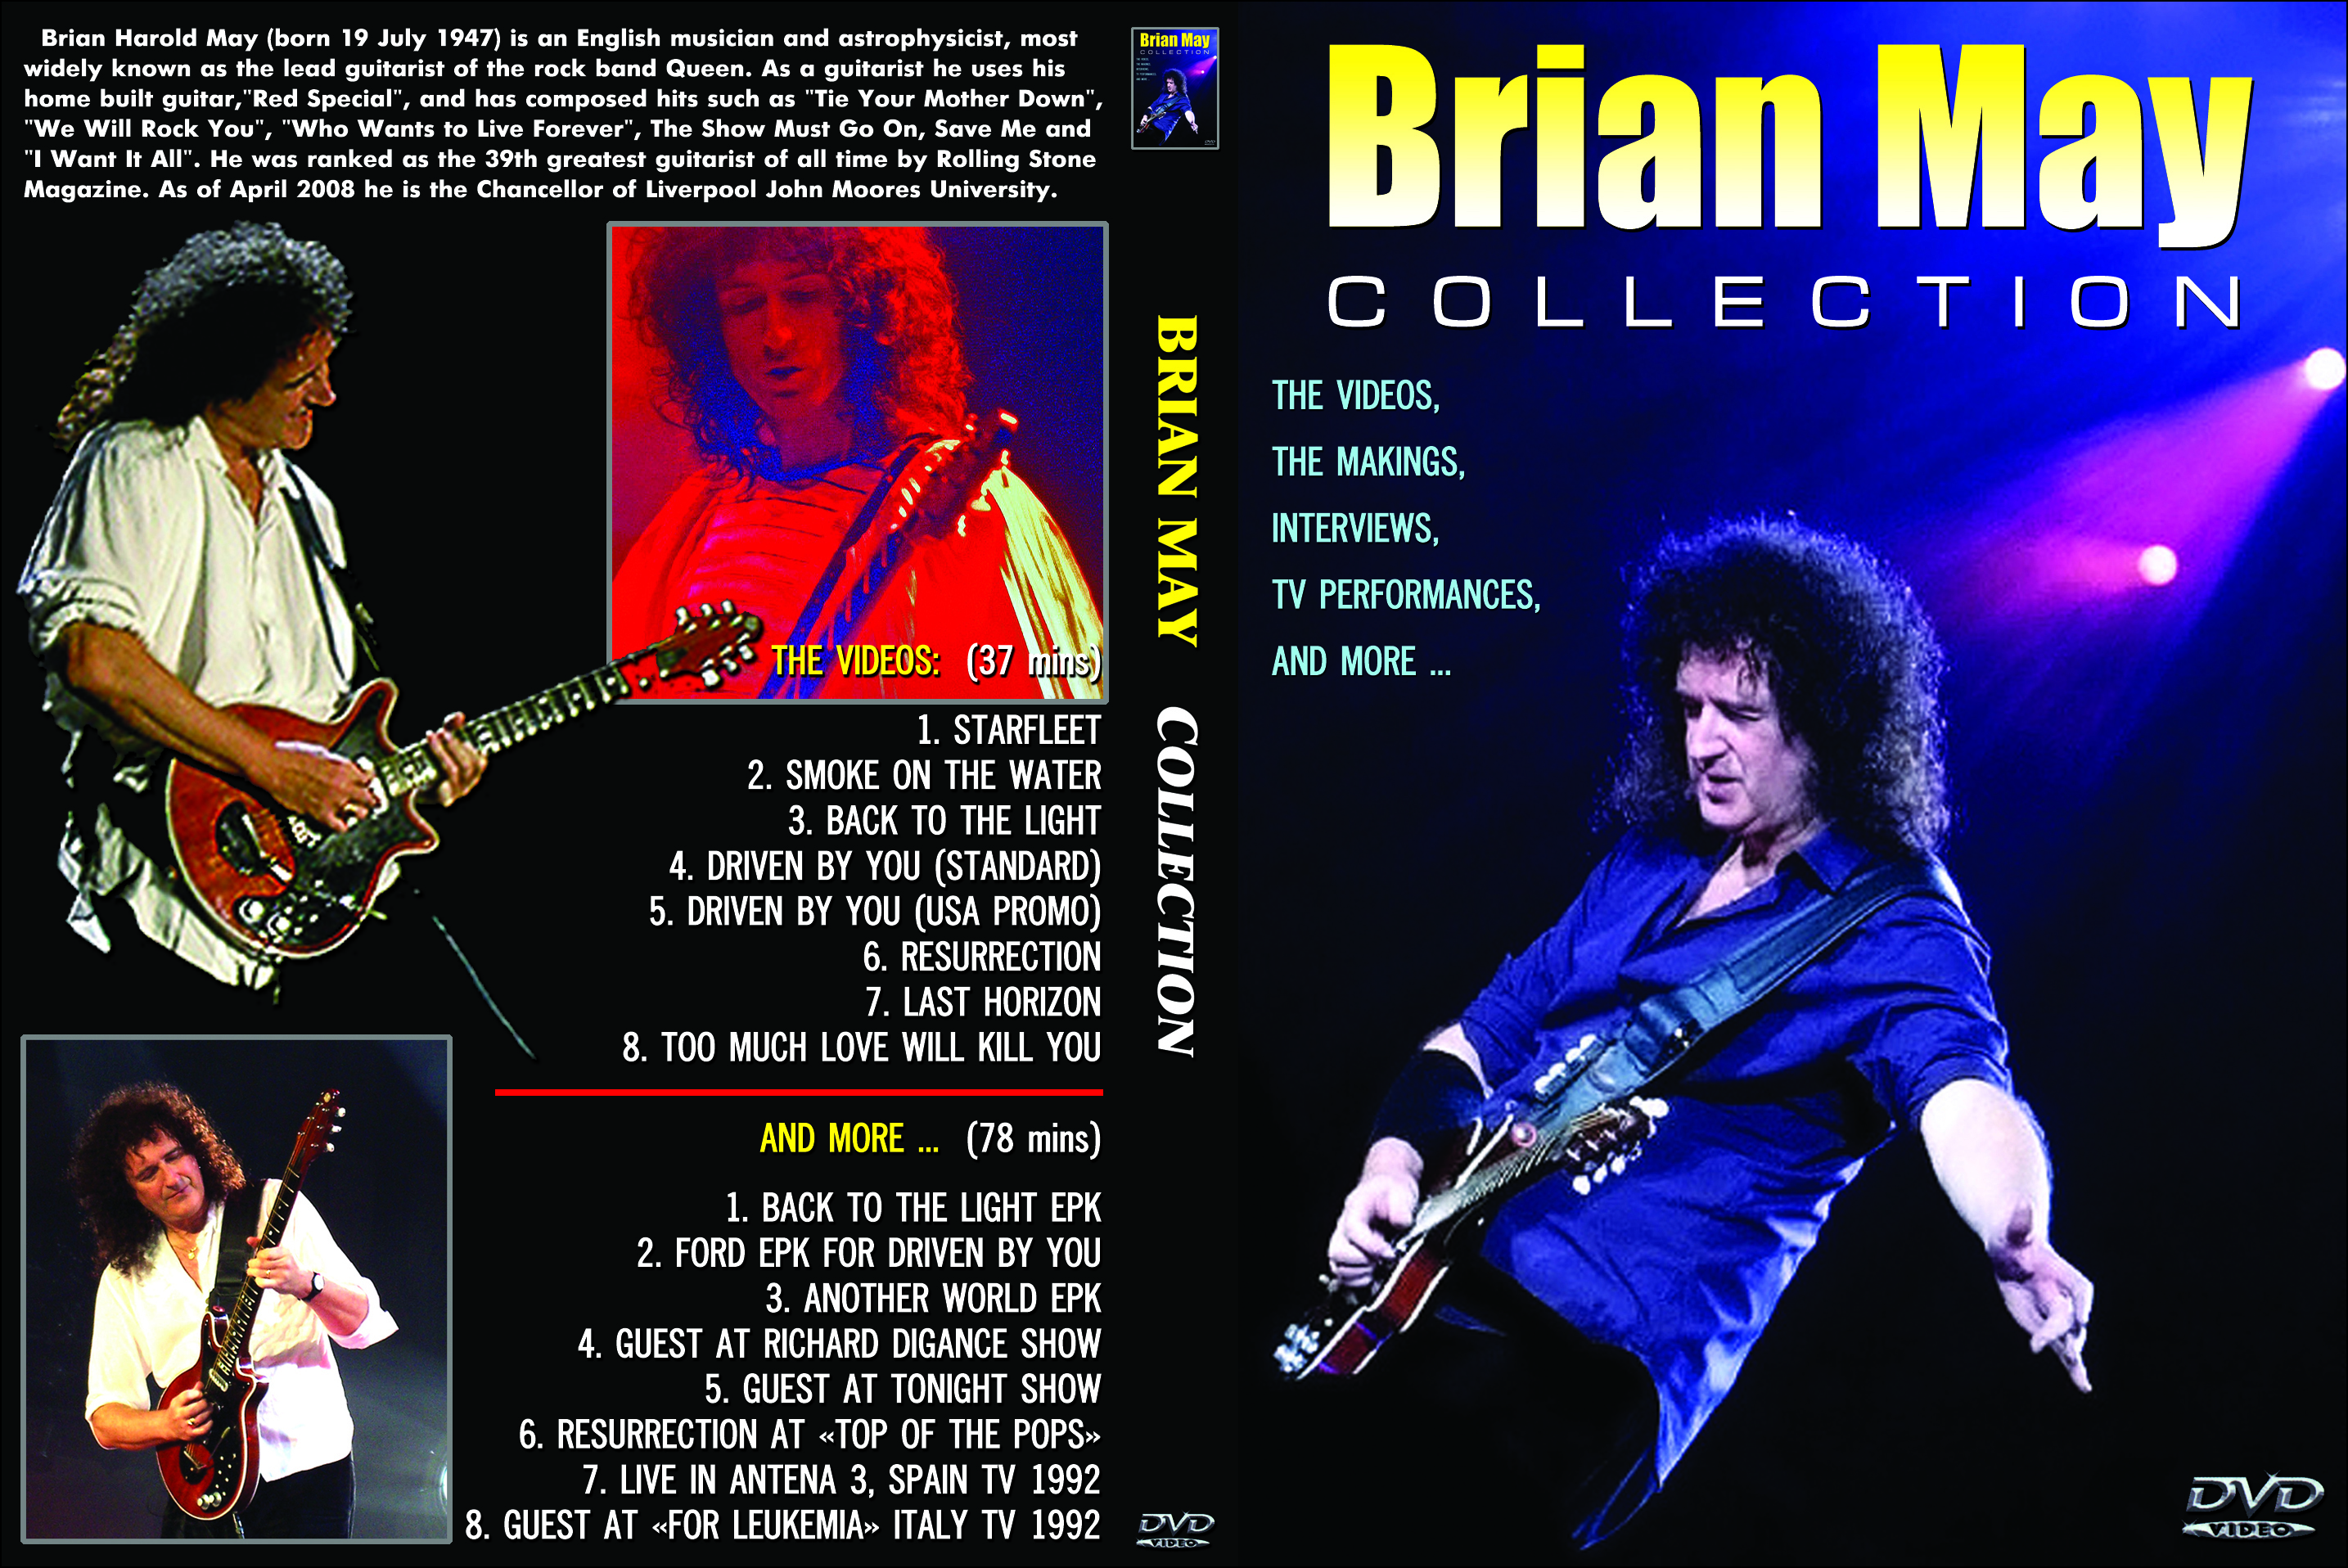 Brian May - The Video Collection DVD